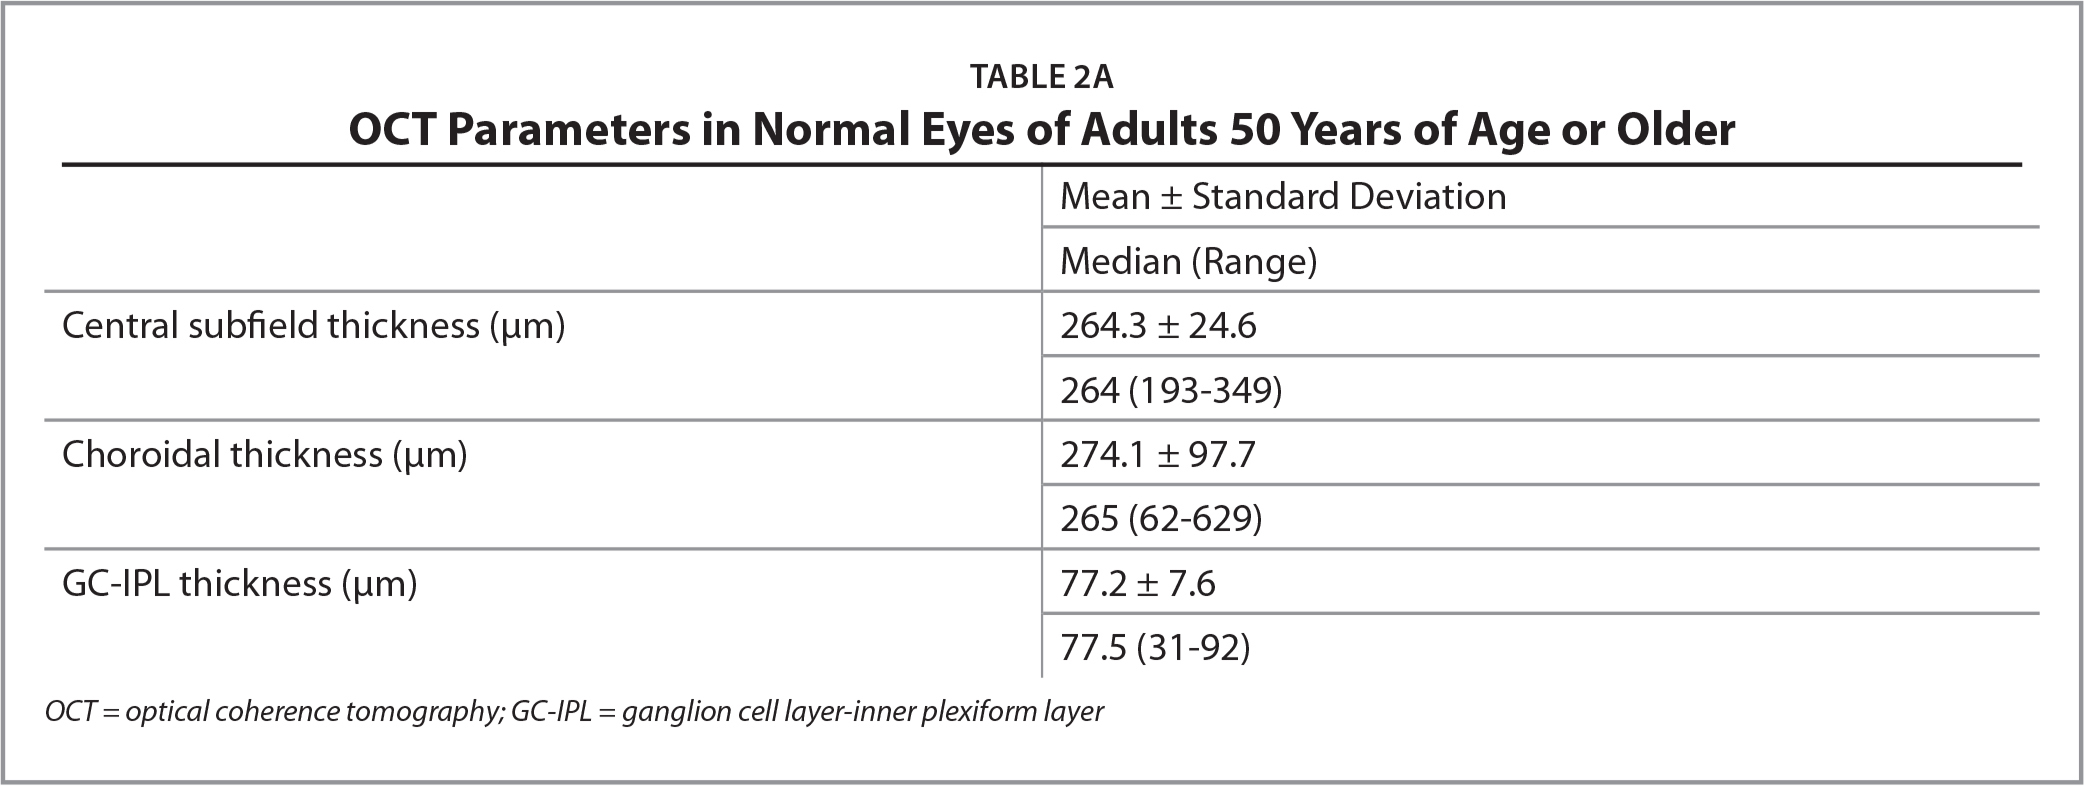 OCT Parameters in Normal Eyes of Adults 50 Years of Age or Older